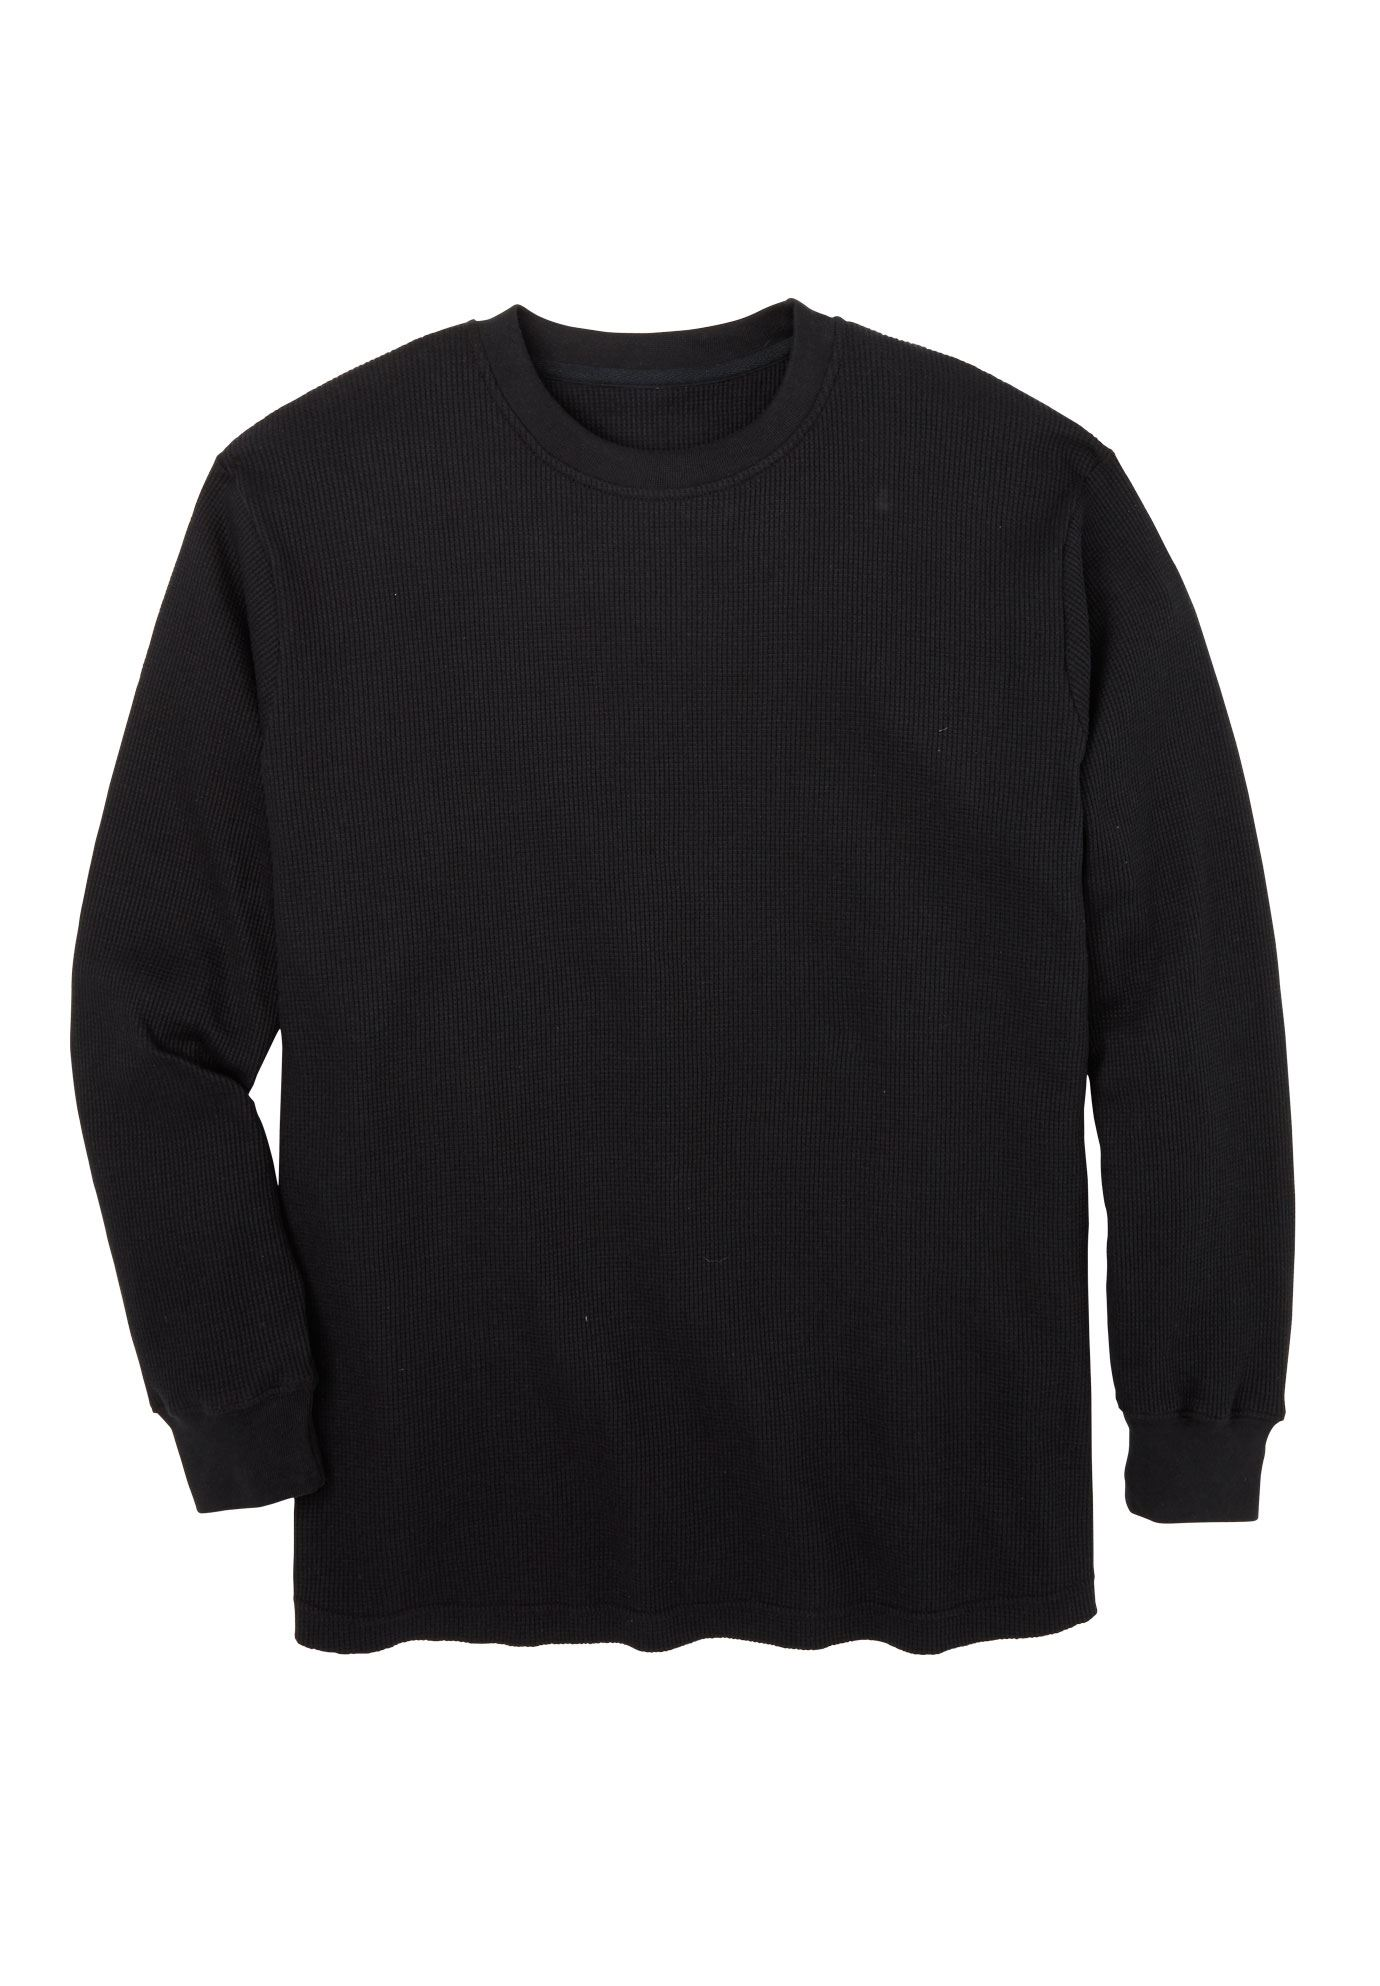 Heavyweight Waffle Knit Crewneck Tee by Boulder Creek®, BLACK, hi-res